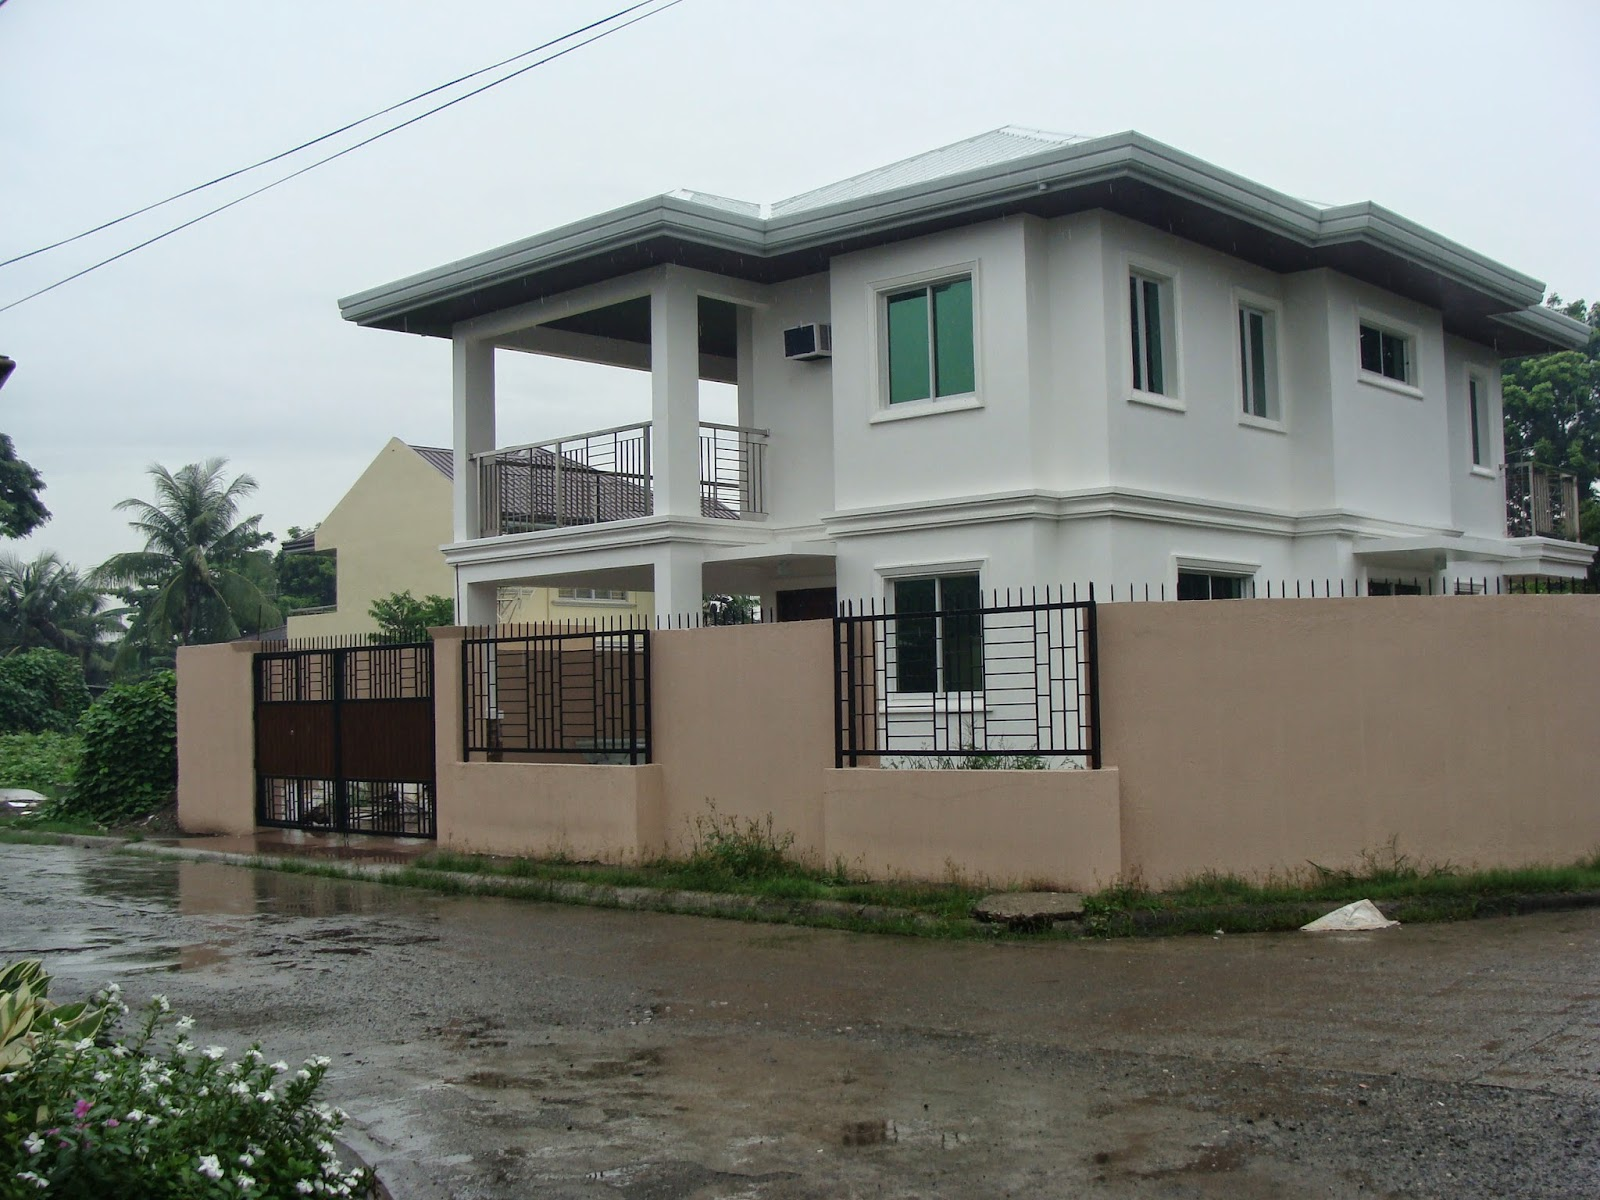 House plans and design house design two story philippines for Philippine home designs ideas